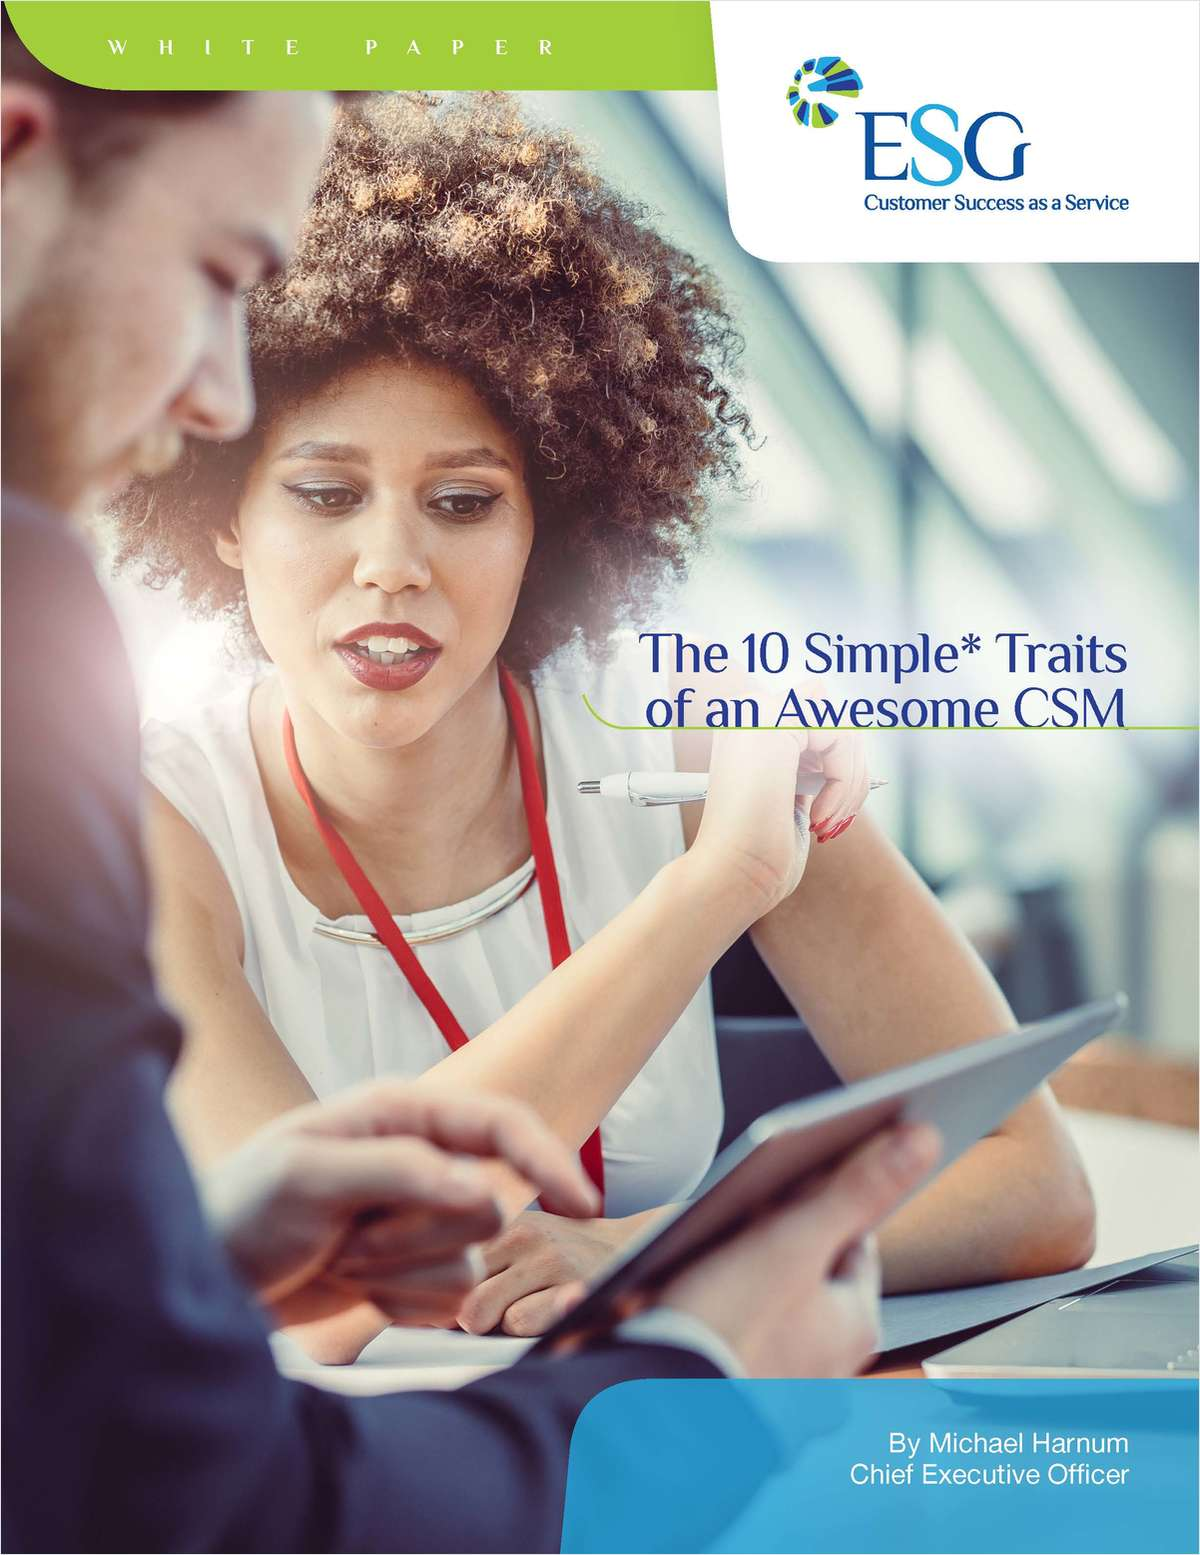 The 10 Simple* Traits of an Awesome CSM